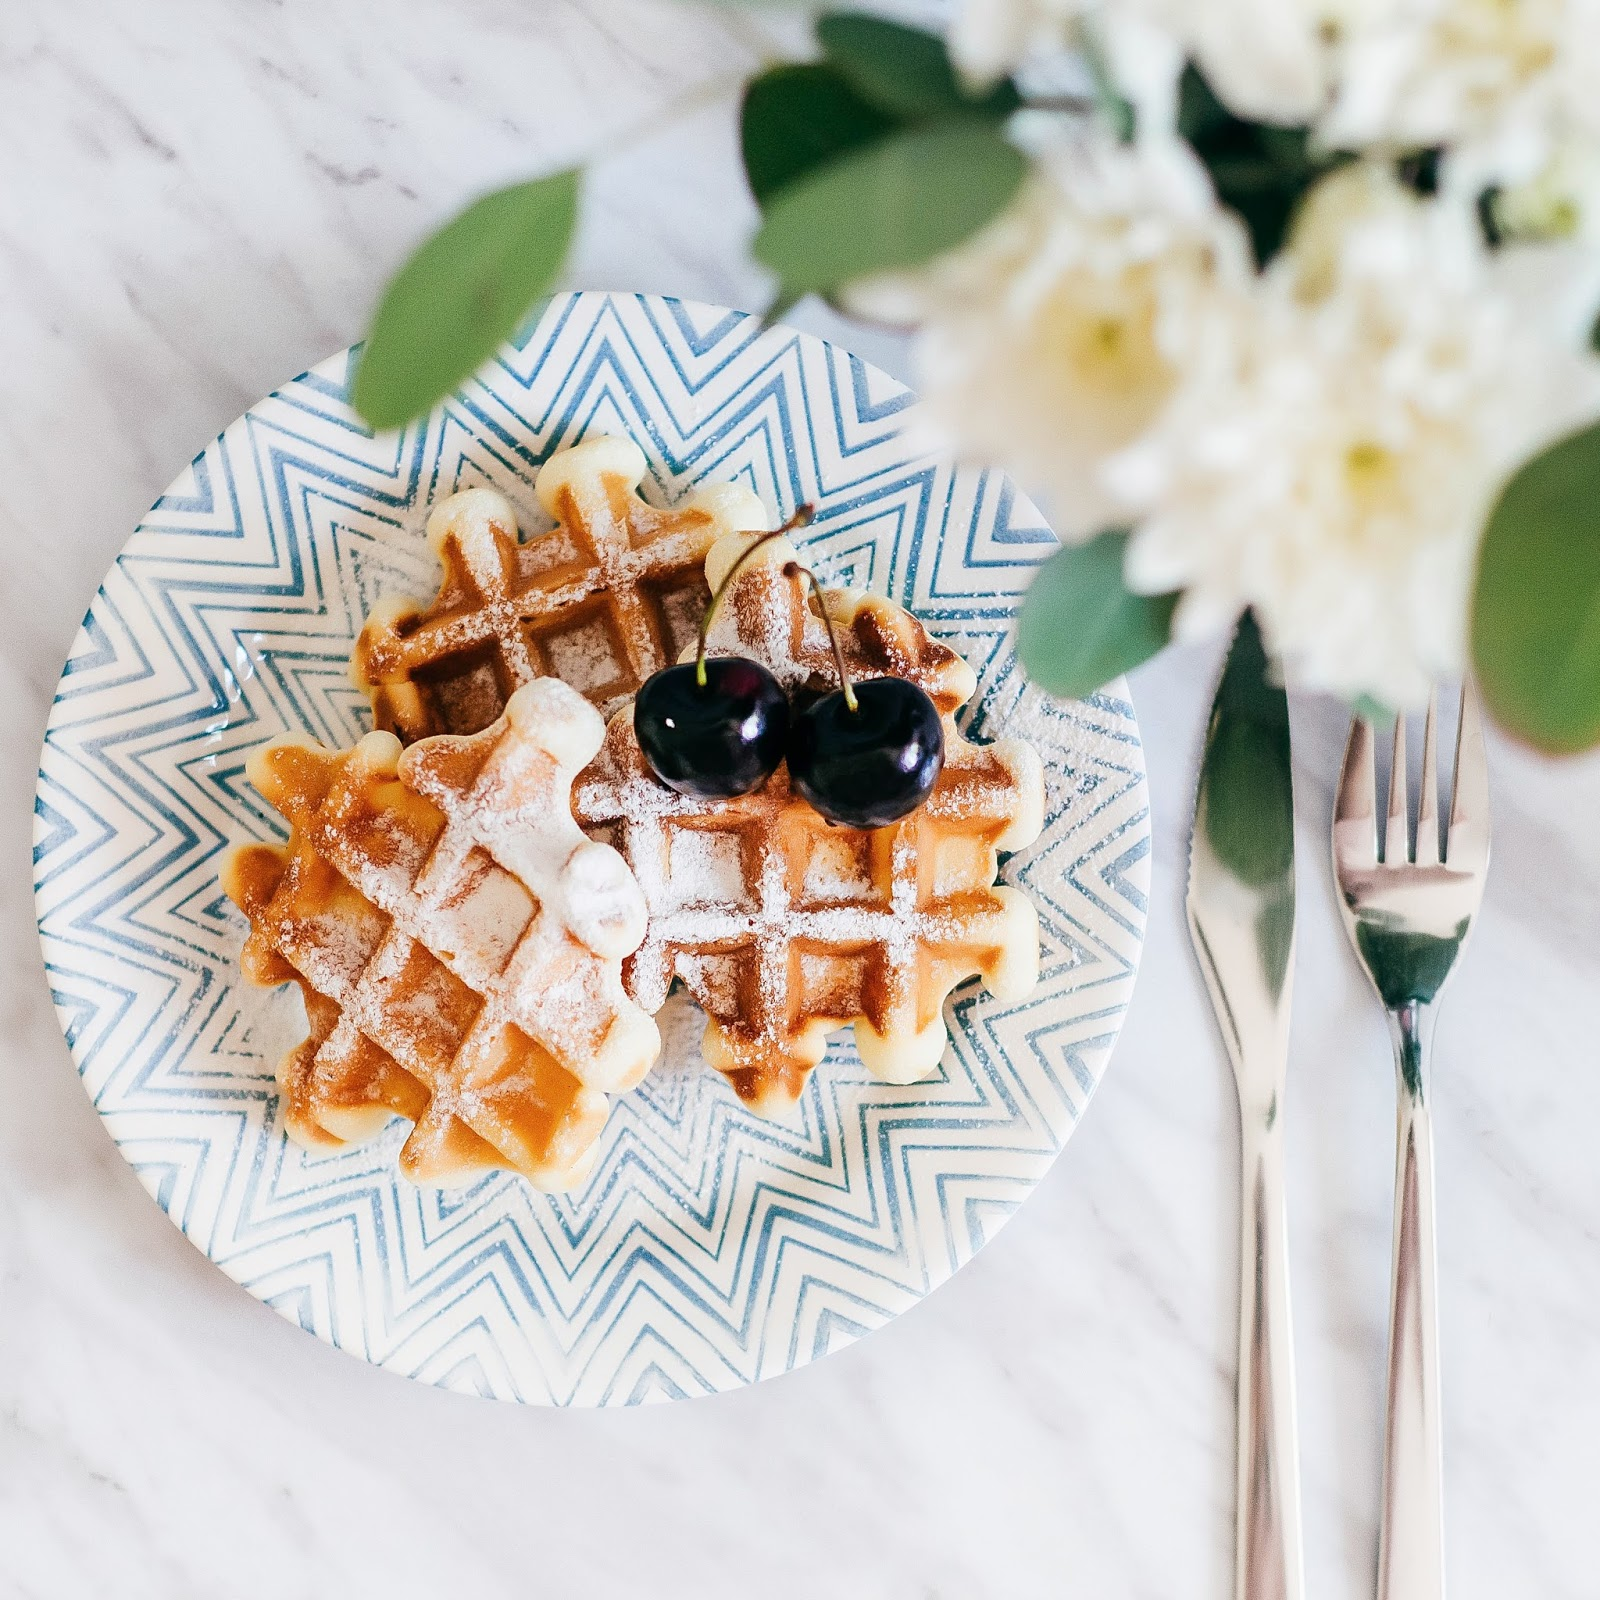 waffles with powdered sugar for breakfast or brunch